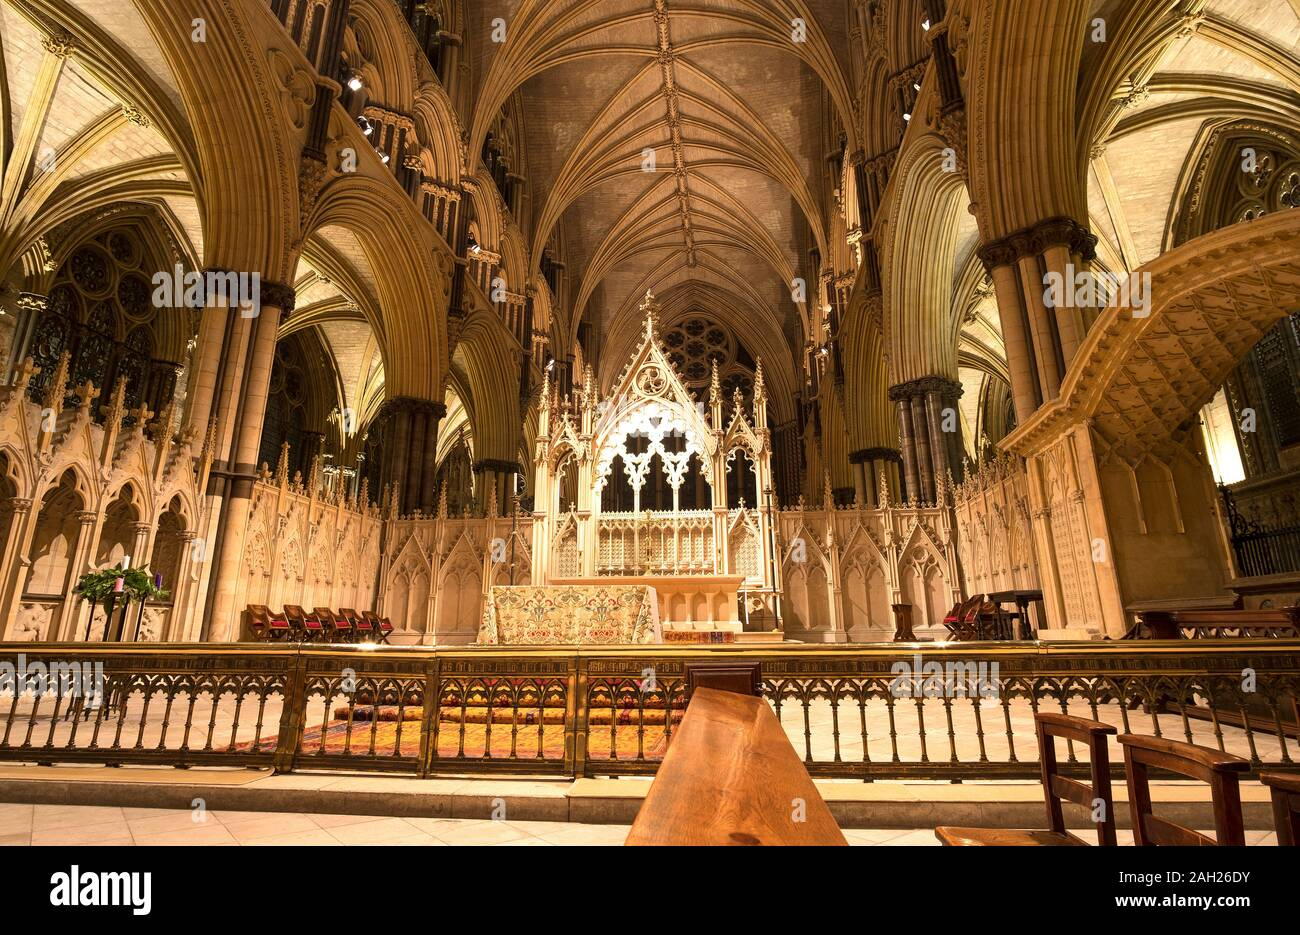 Altar area inside Lincoln Cathedral, Lincolnshire, UK Stock Photo